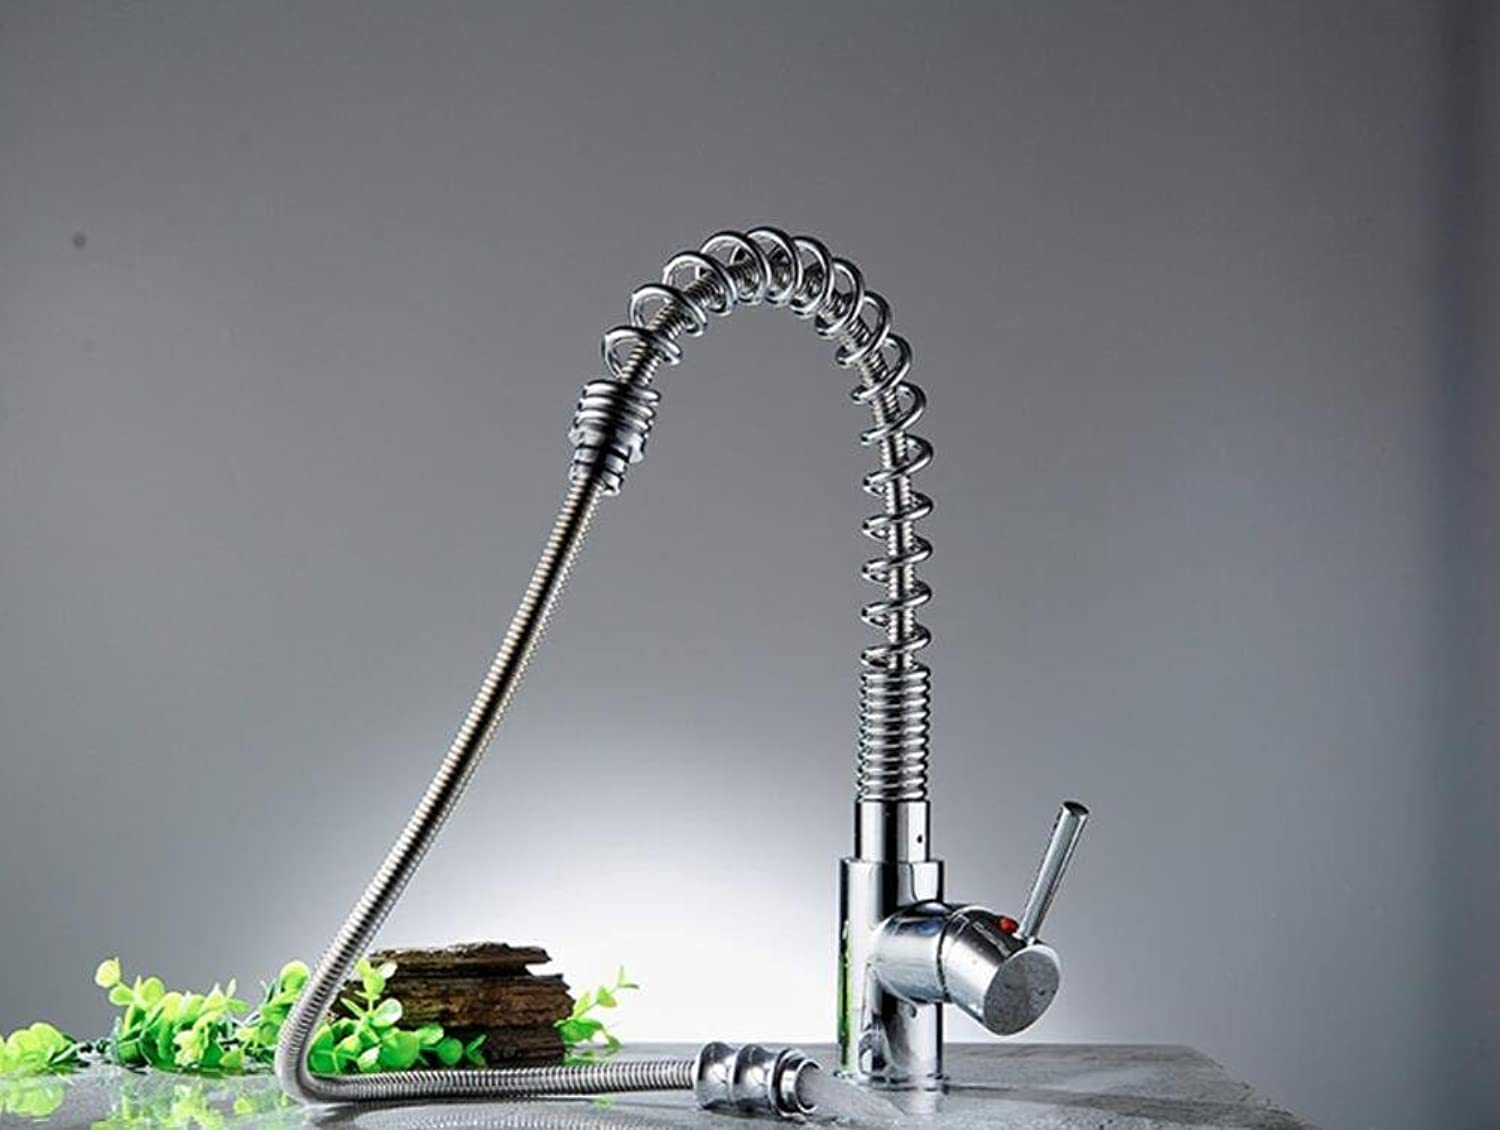 Full Copper Chrome Spring Style Pull-type Cold and Hot Mixing Water Wash Faucet Home Hotel Kitchen Sink Tap